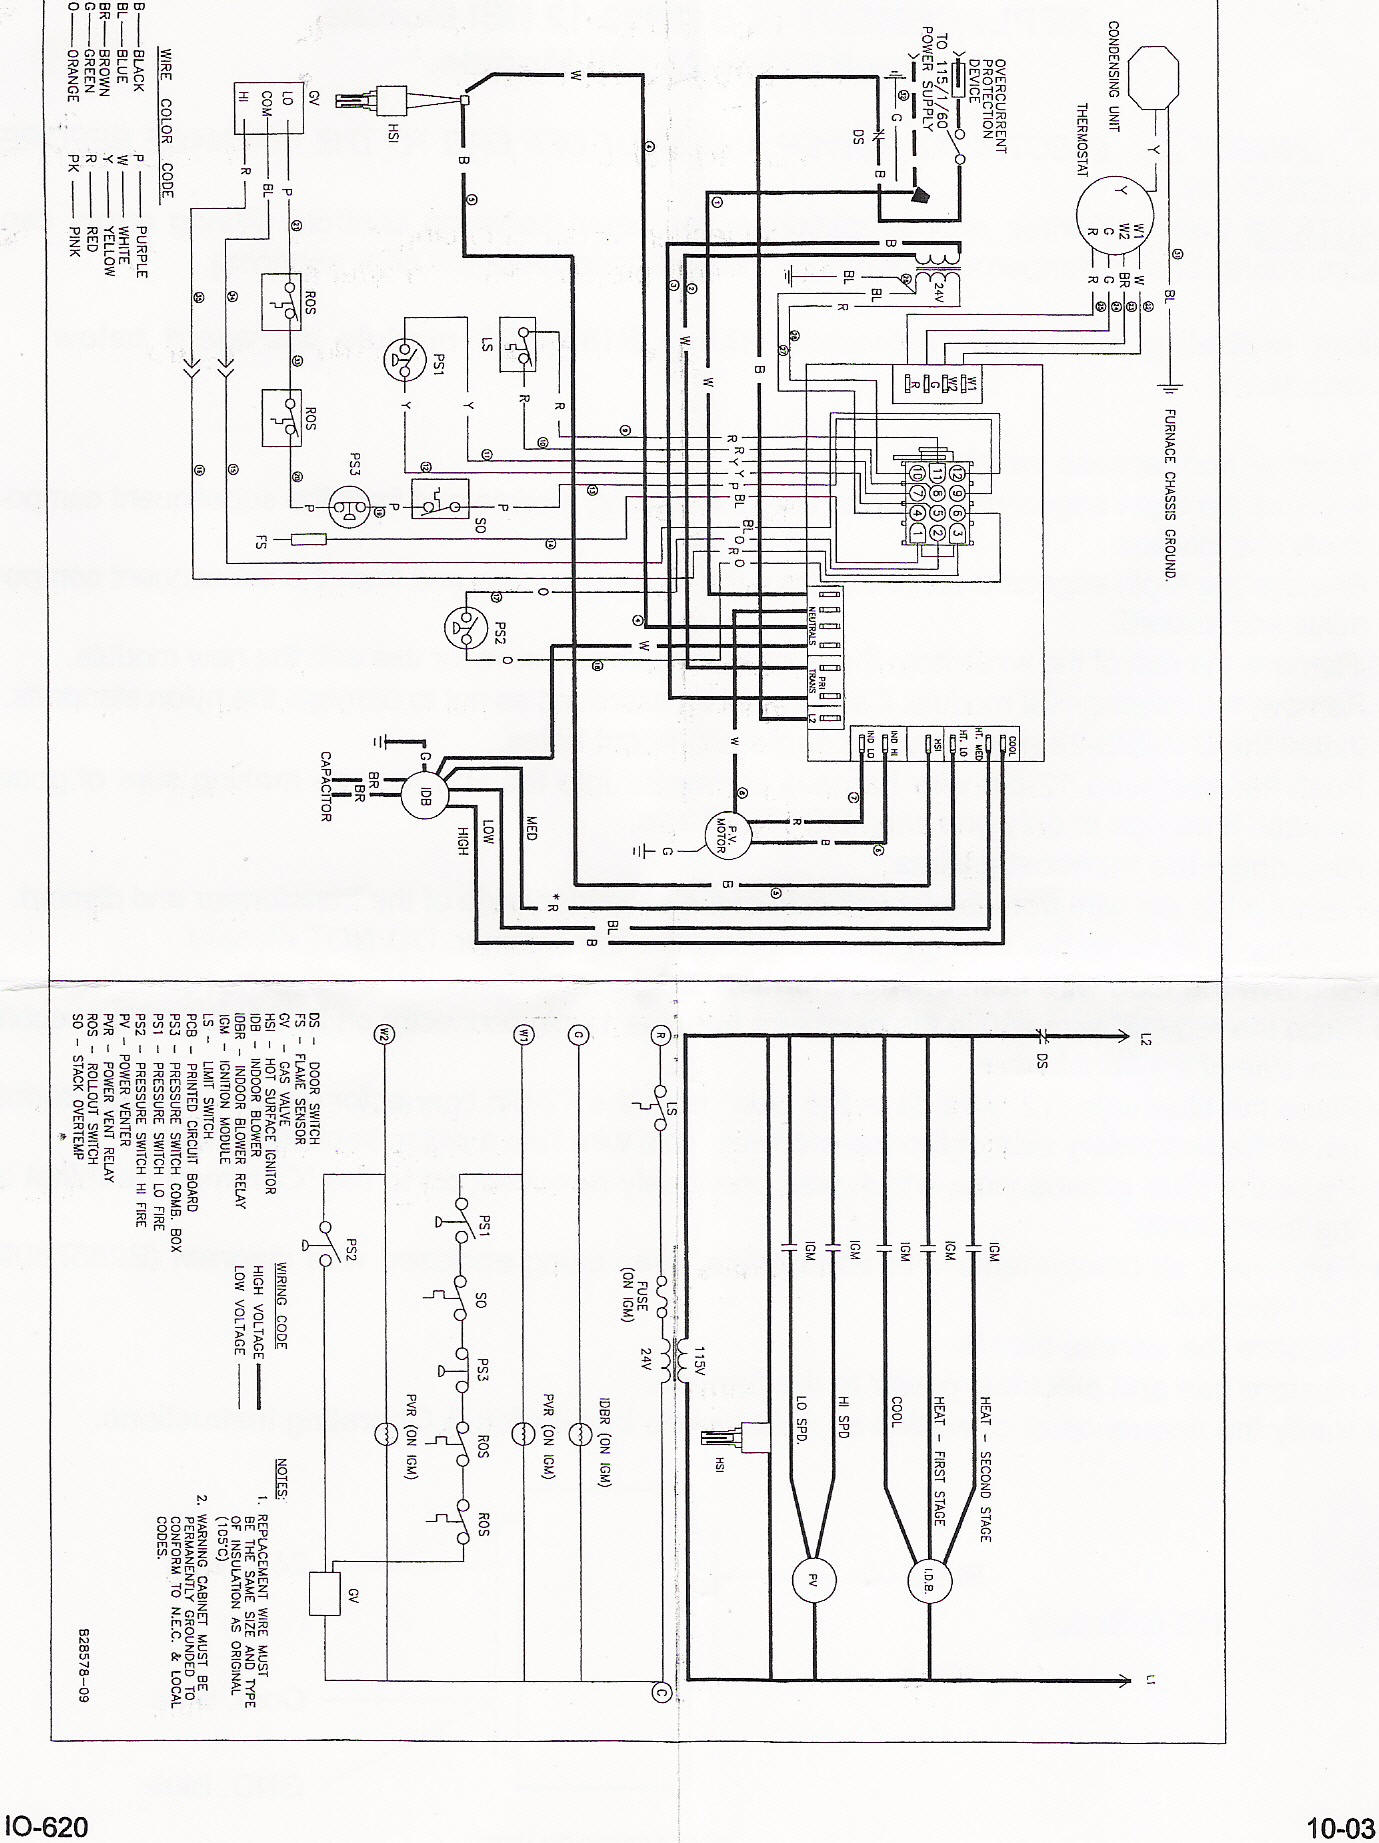 goodma2 instr goodman control board b18099 23 instructions hvac control board wiring diagram at n-0.co